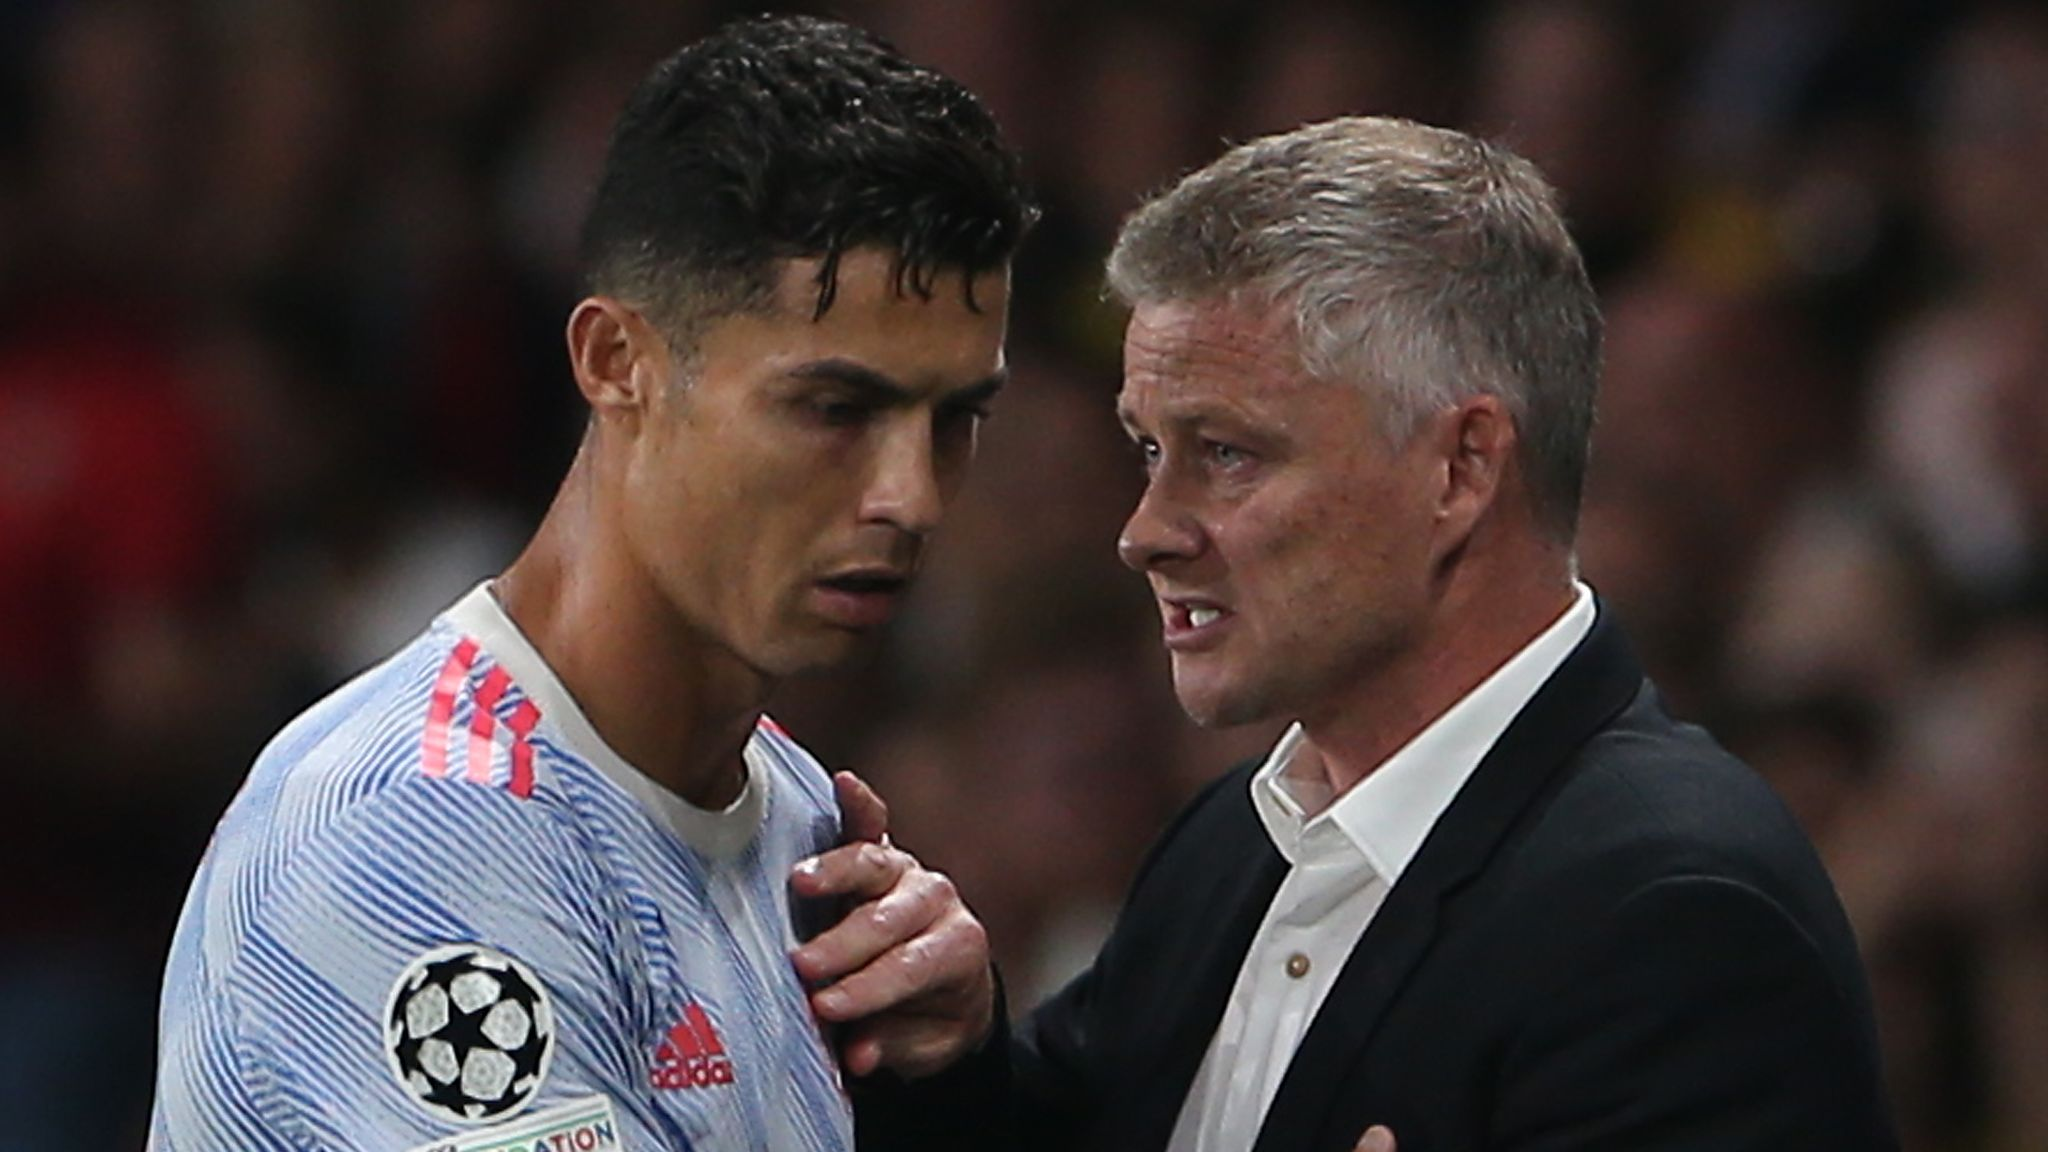 Ole Gunnar Solskjaer explains Cristiano Ronaldo and Bruno Fernandes  substitutions during Man Utd Champions League defeat | Football News | Sky  Sports